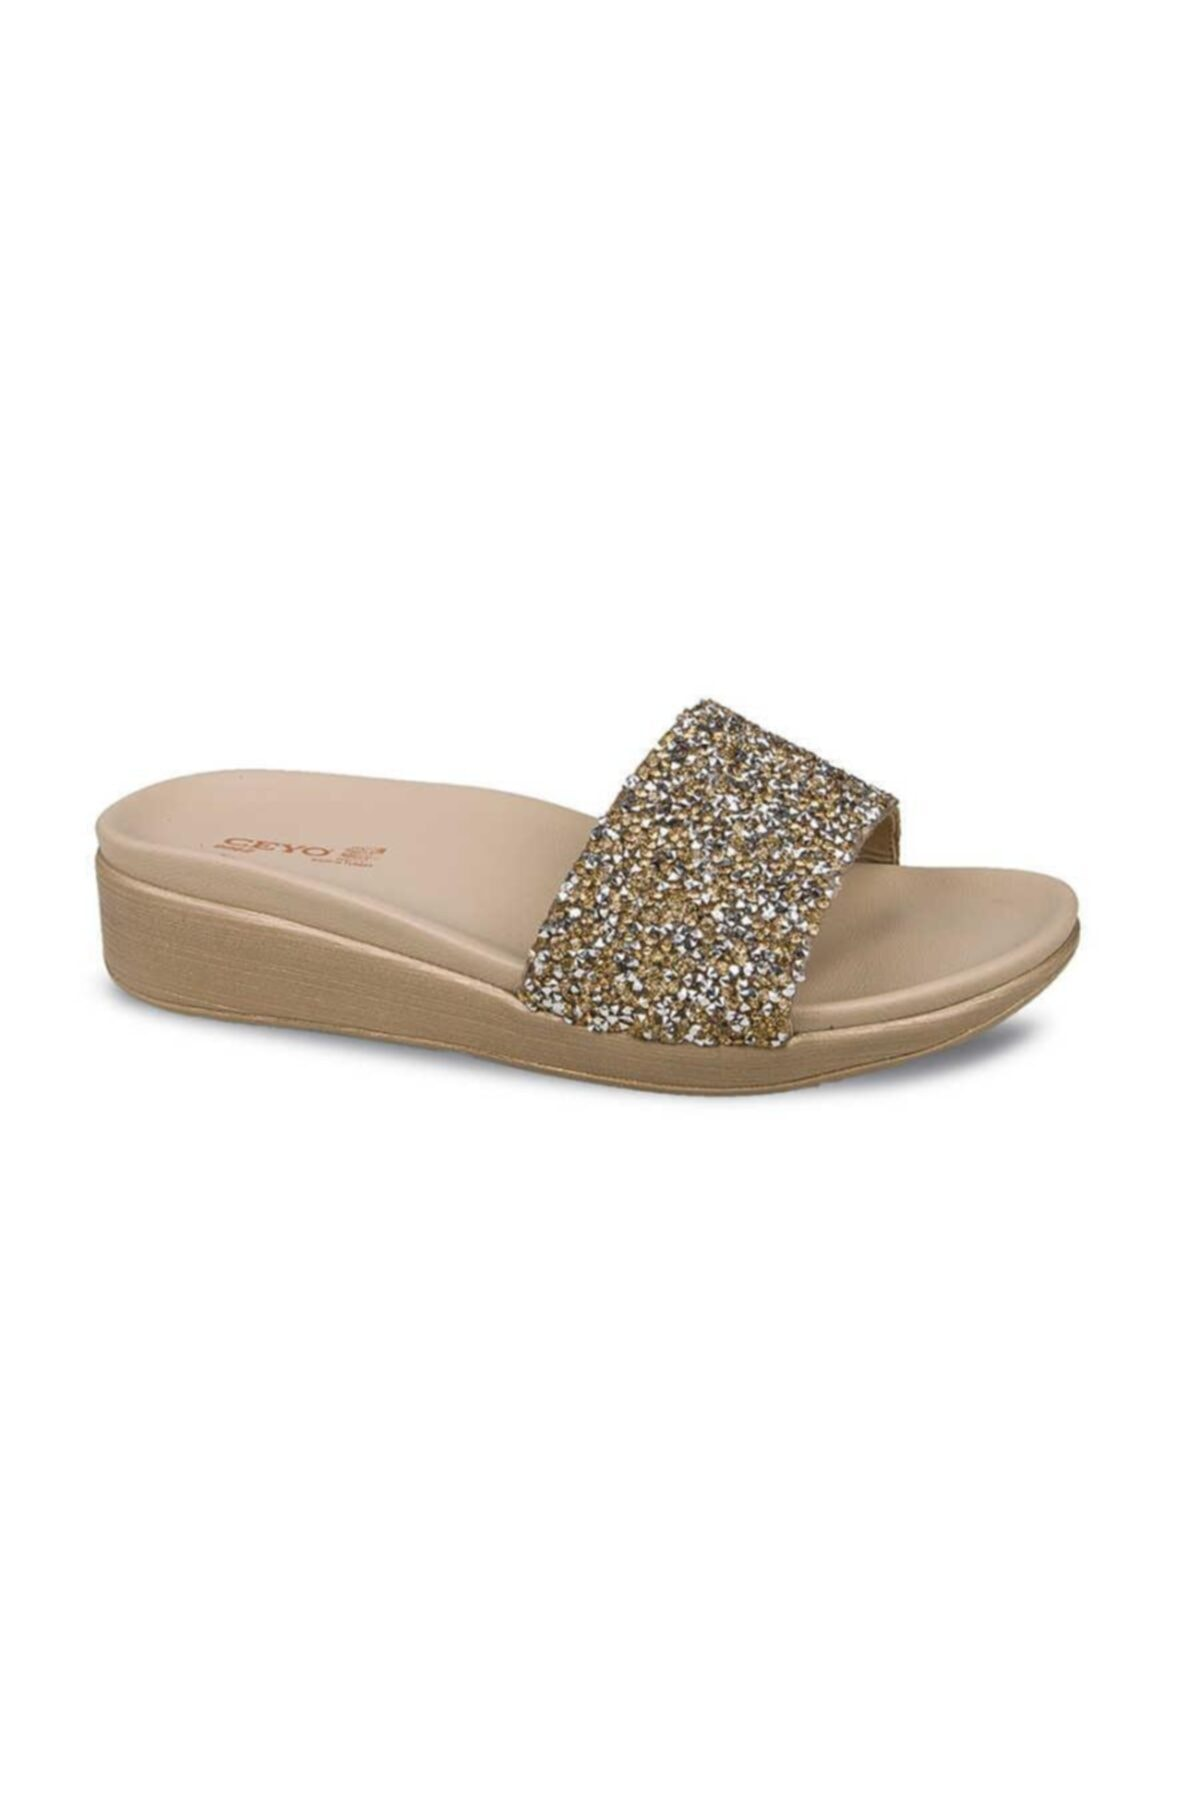 Casual Light Comfortable Stylish Orthobetic Gold Color Silvery Women's Slippers Sandal Shoes